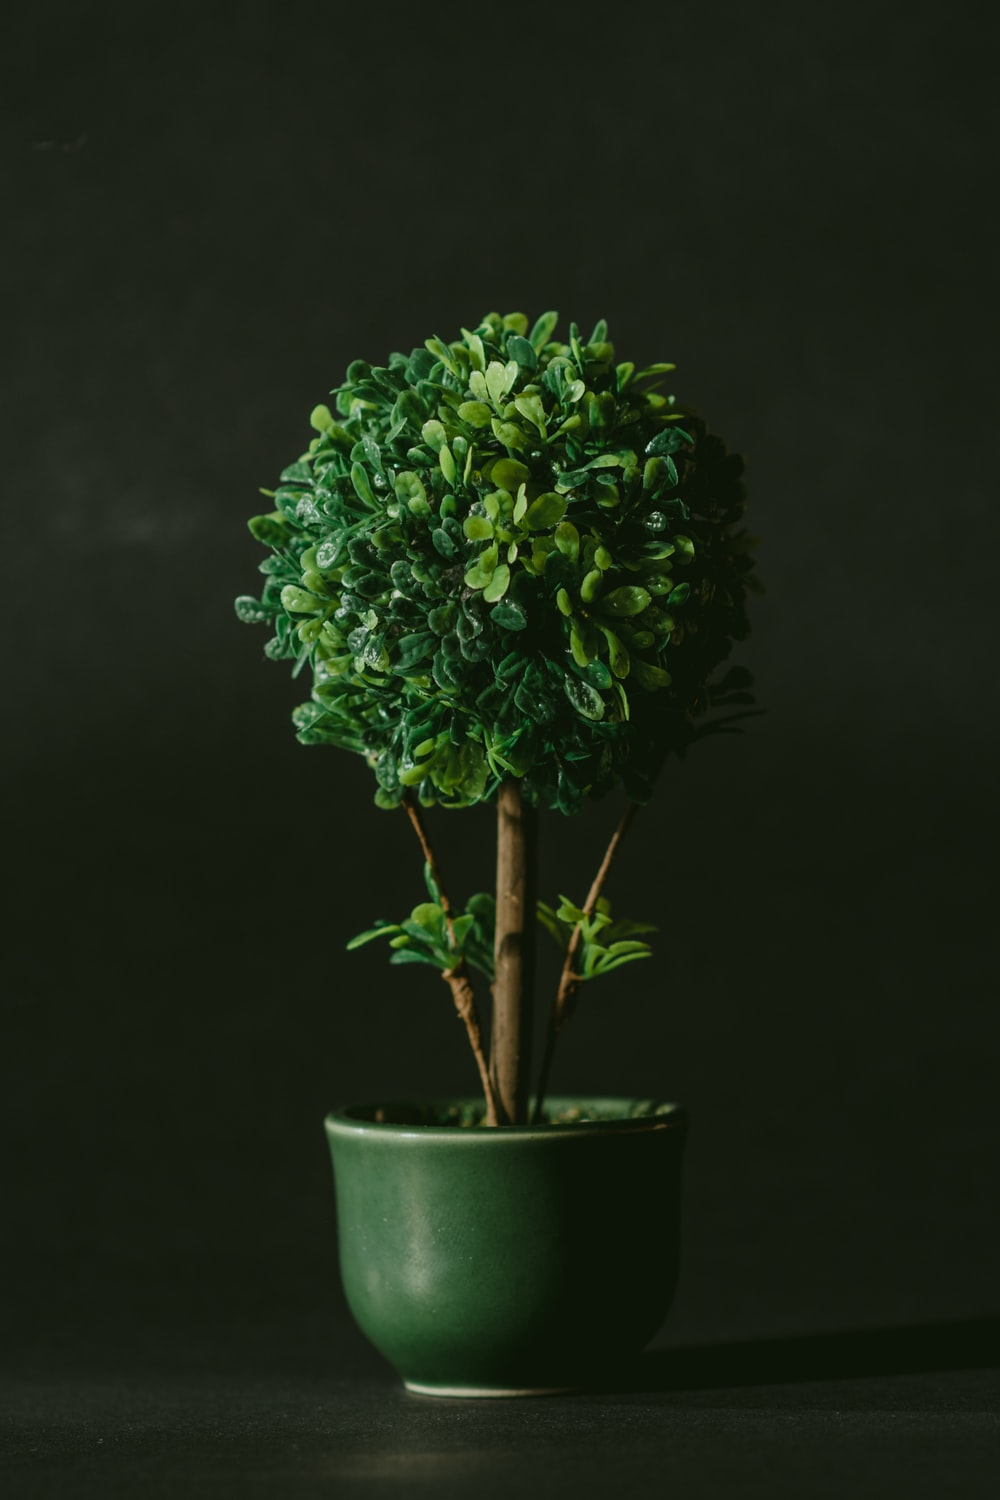 green leafed bonsai tree against black background